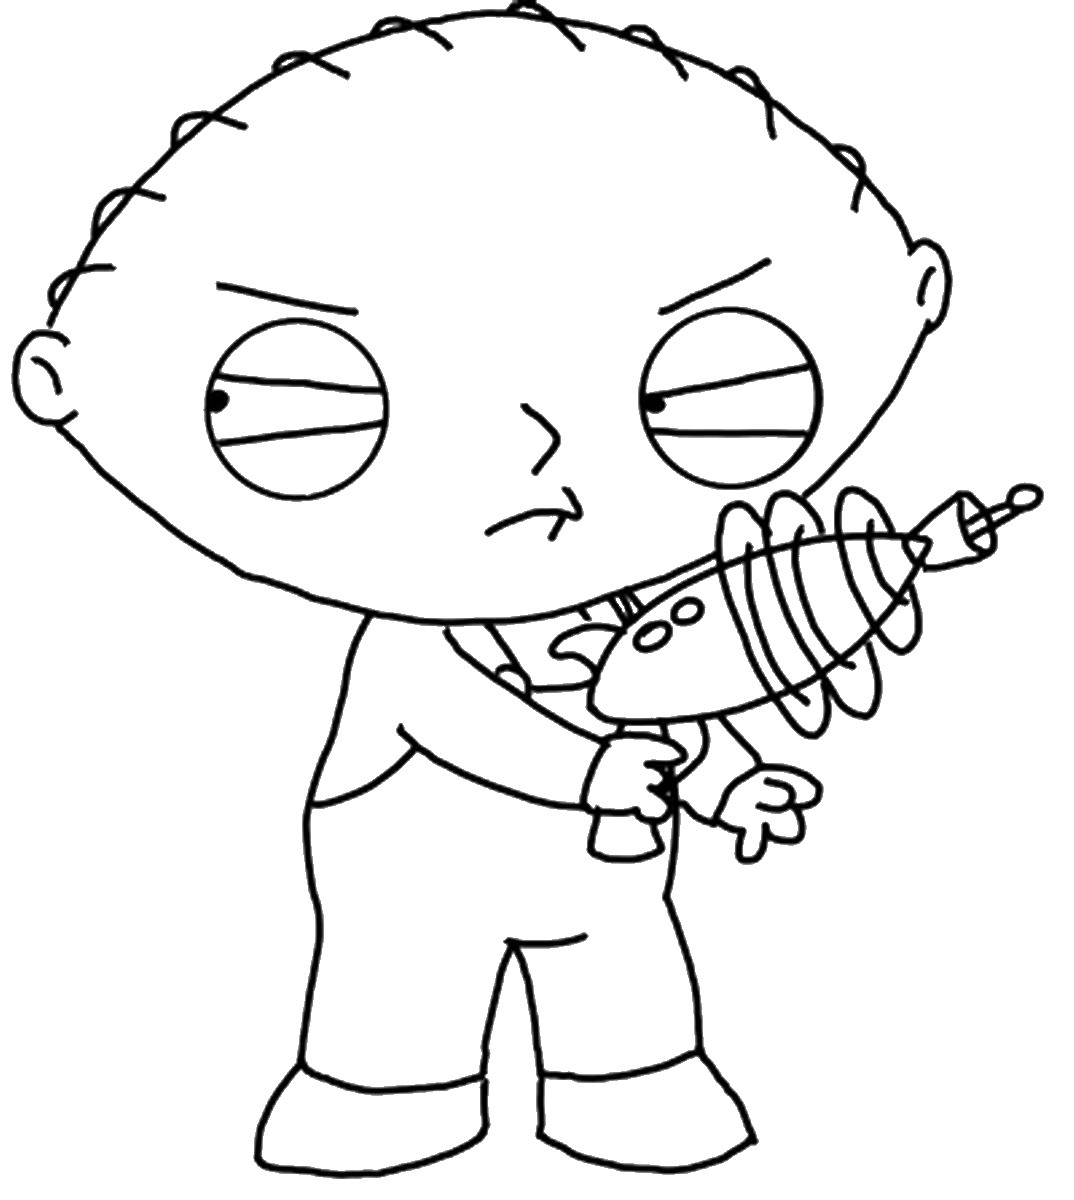 1074x1200 Printable Family Guy Coloring Pages Print Color Craft